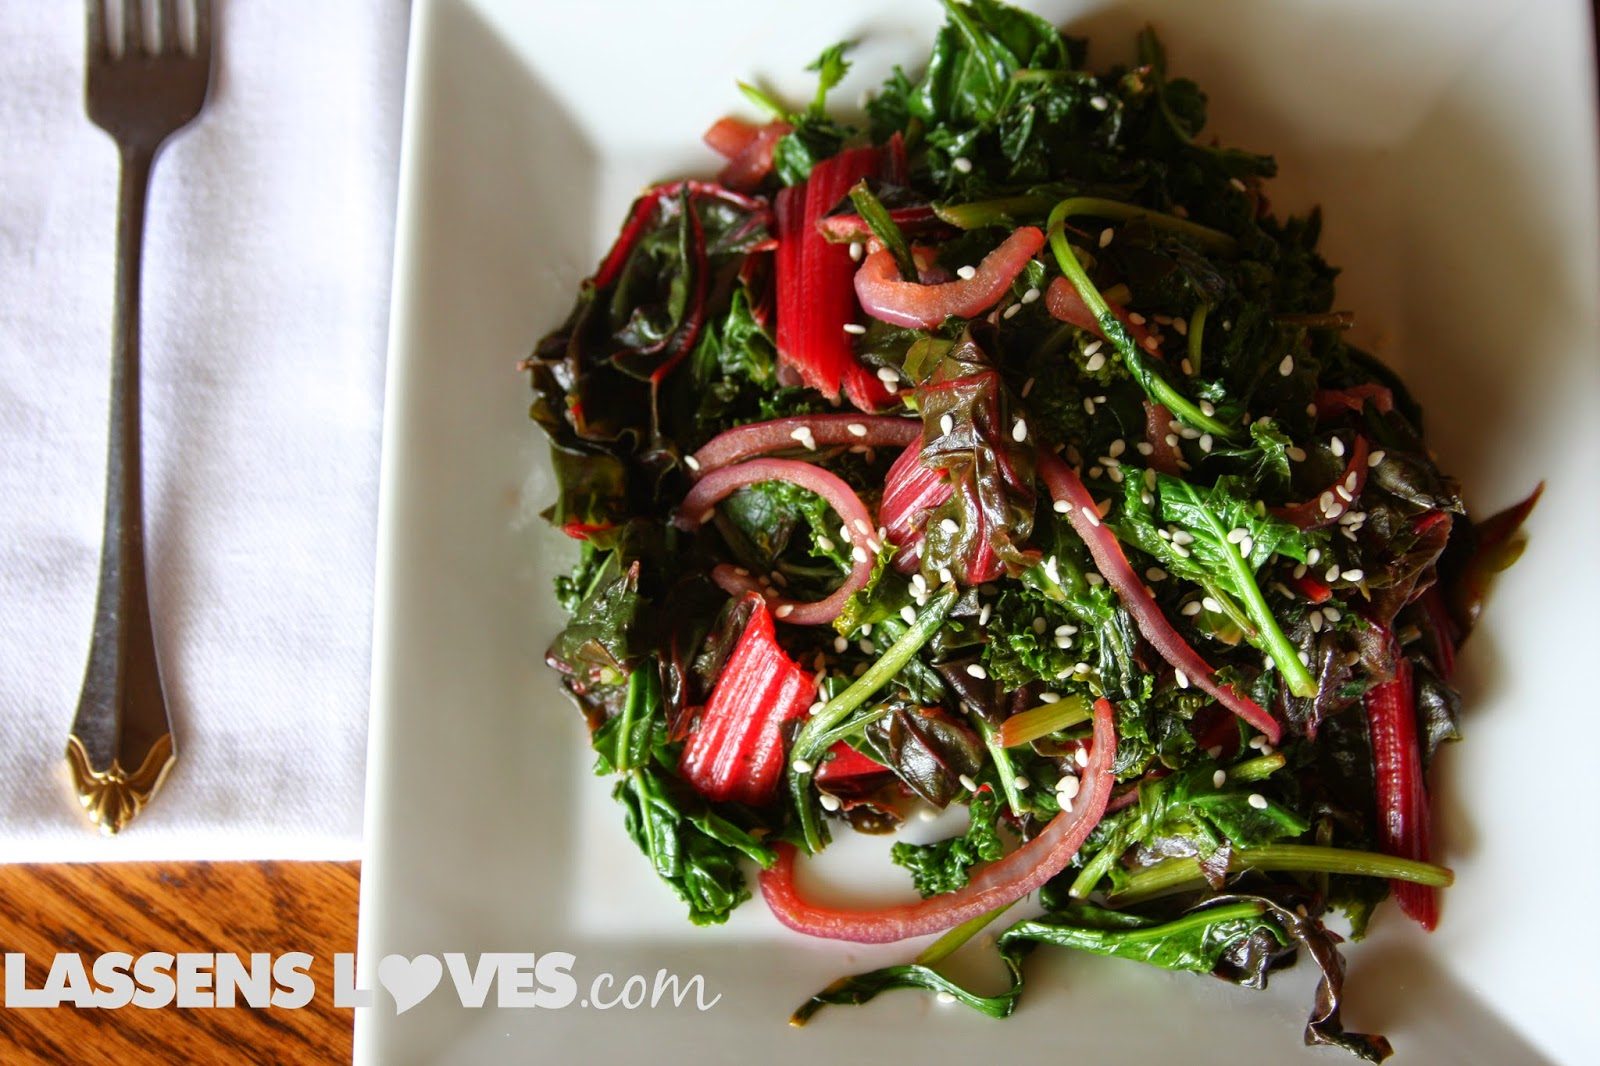 how+to+cook+greens, kale+recipes, red+chard, organic+greens, organic+vegetables